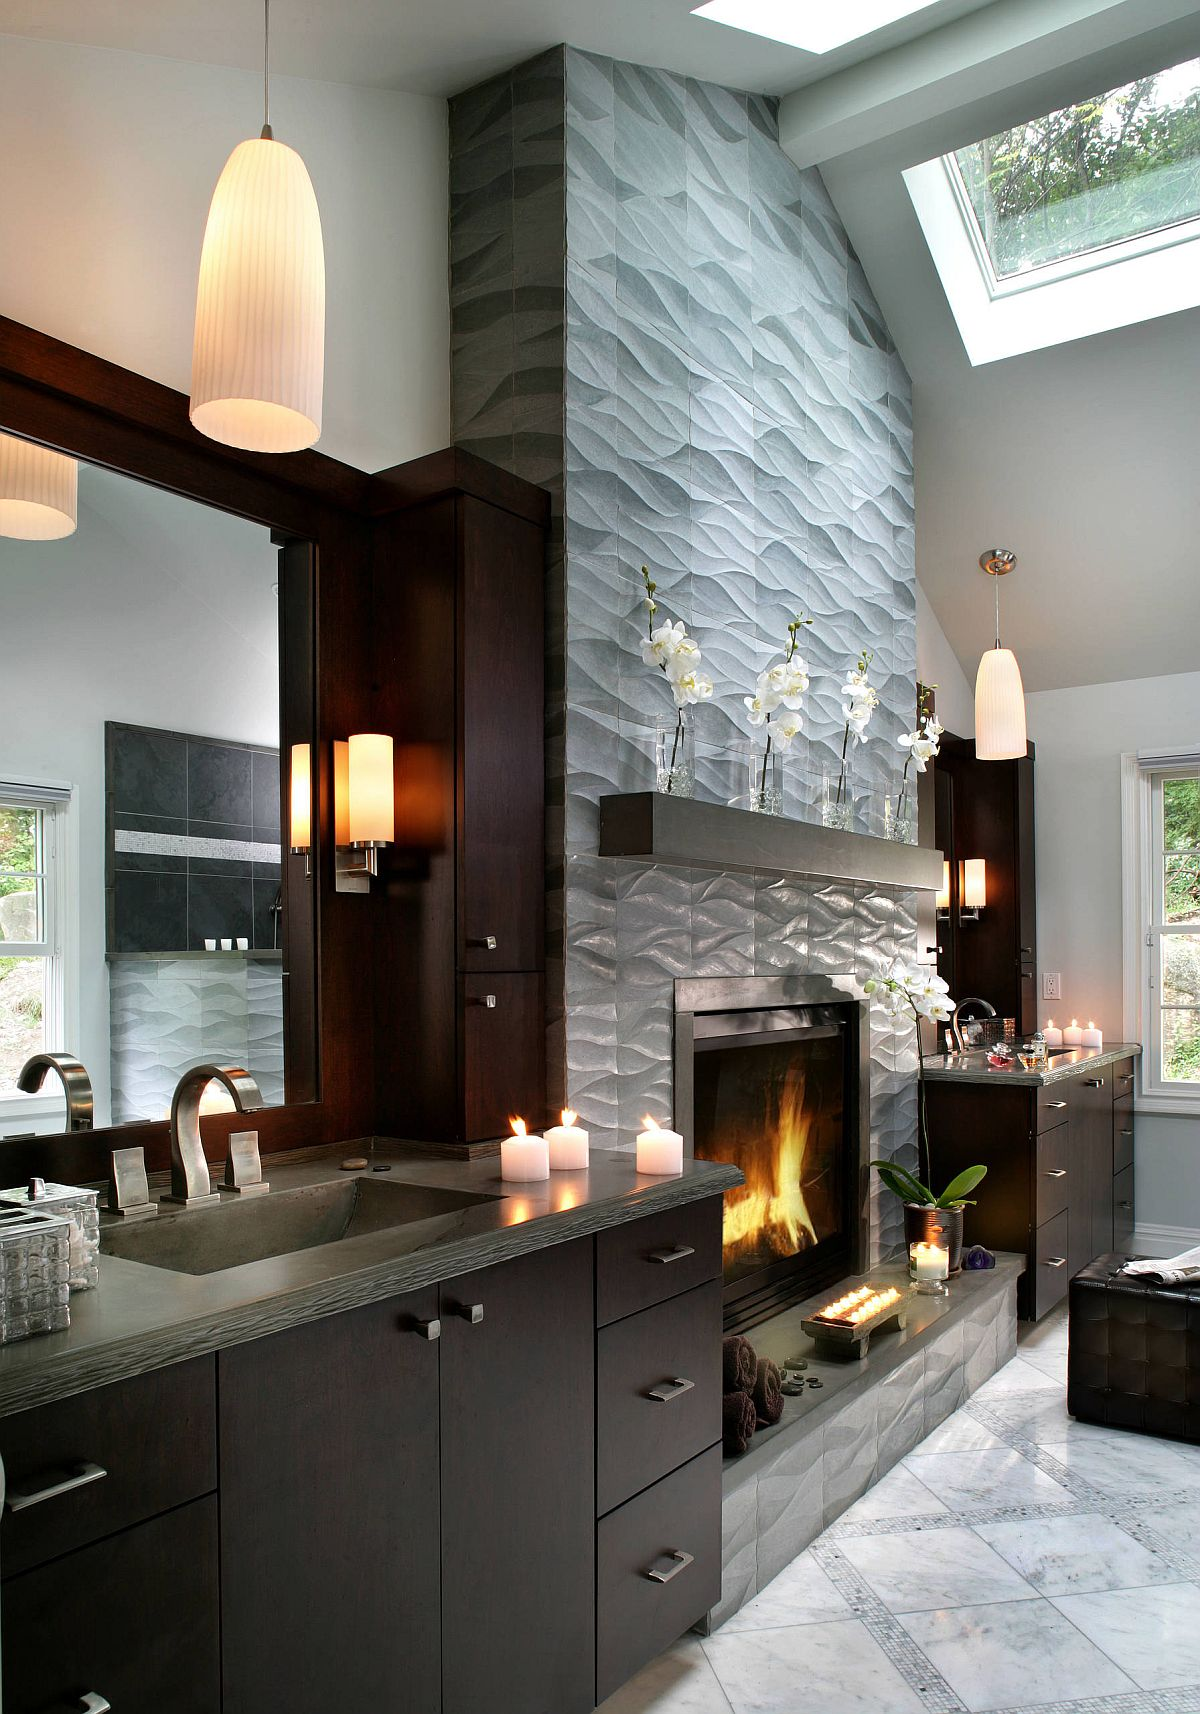 Complete your grand spa-inspired bathroom with a beautiful fireplace